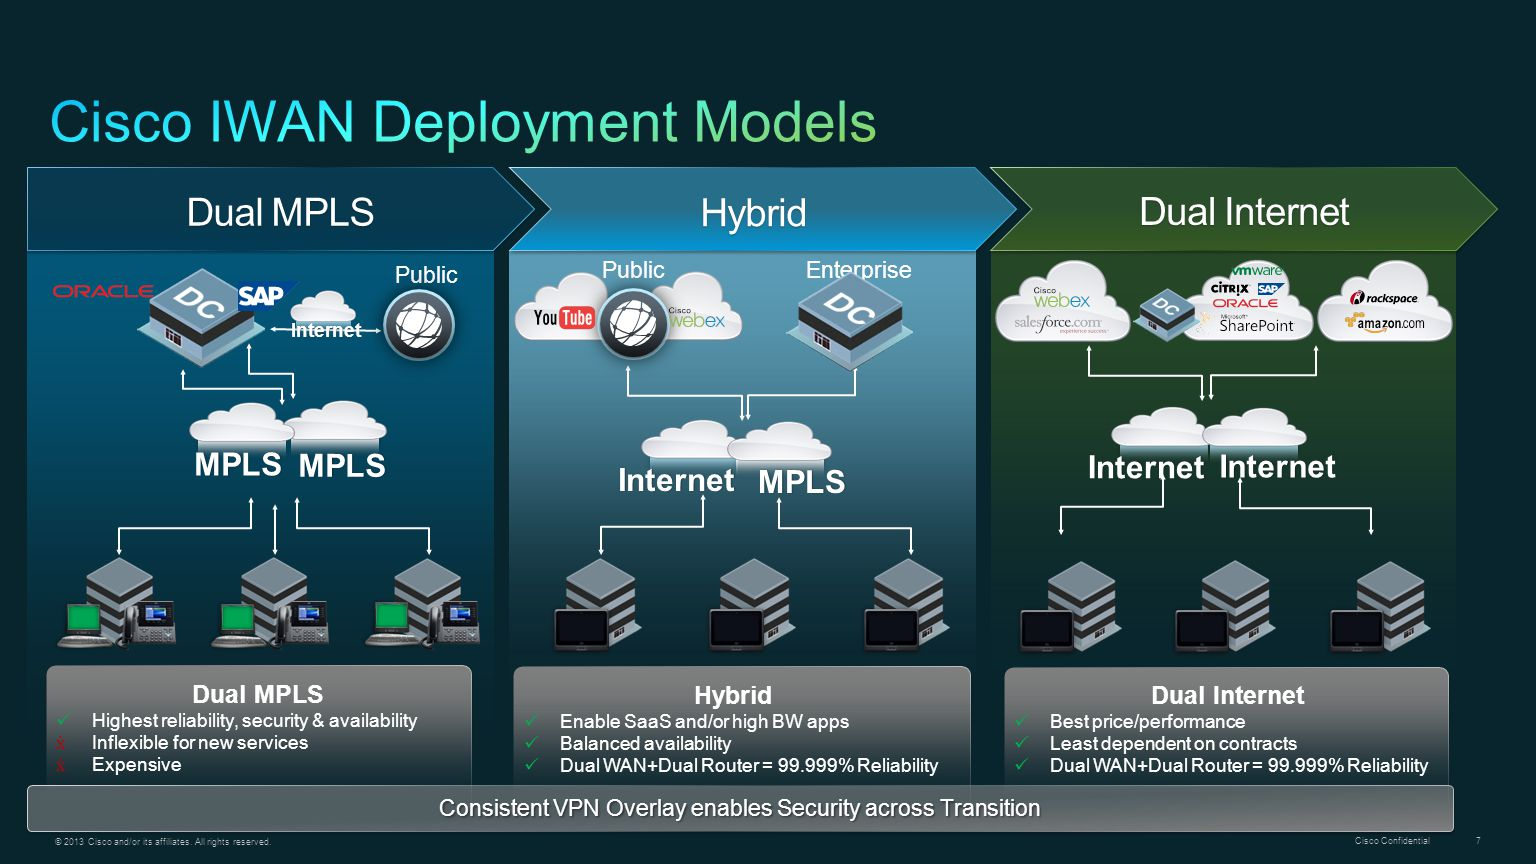 Cisco IWAN Deployment Models